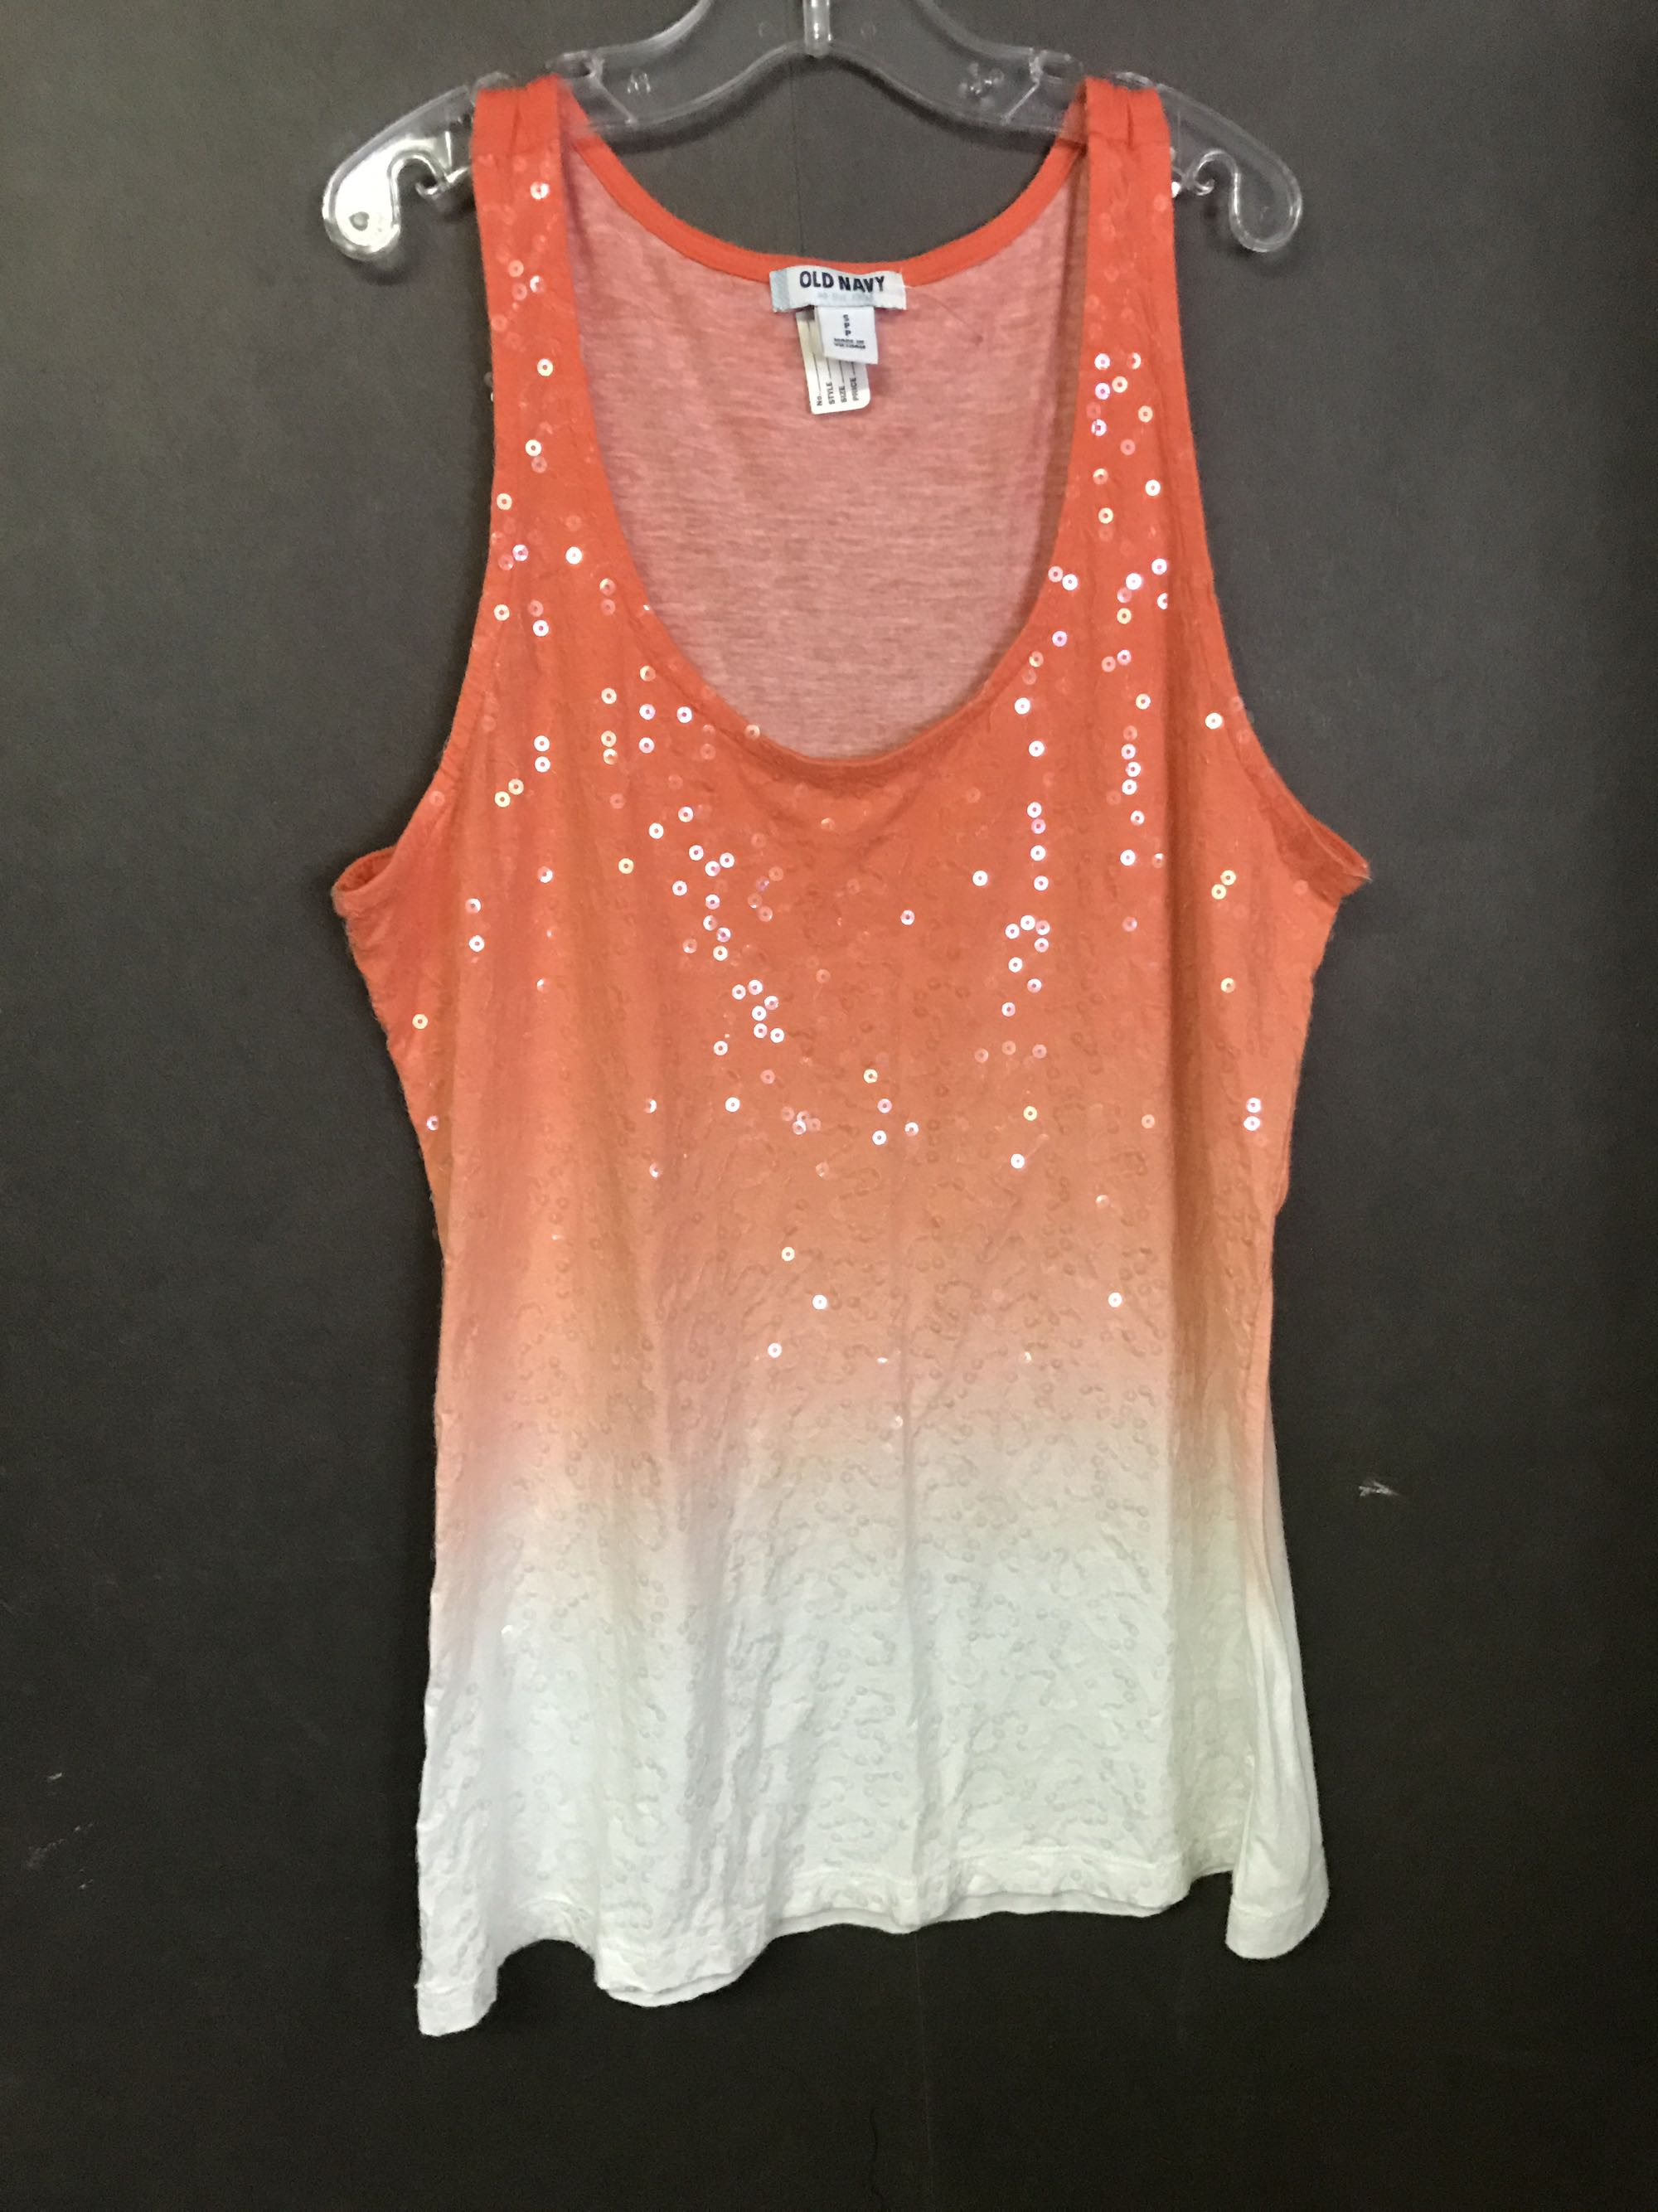 Old navy small sequin ombré tank